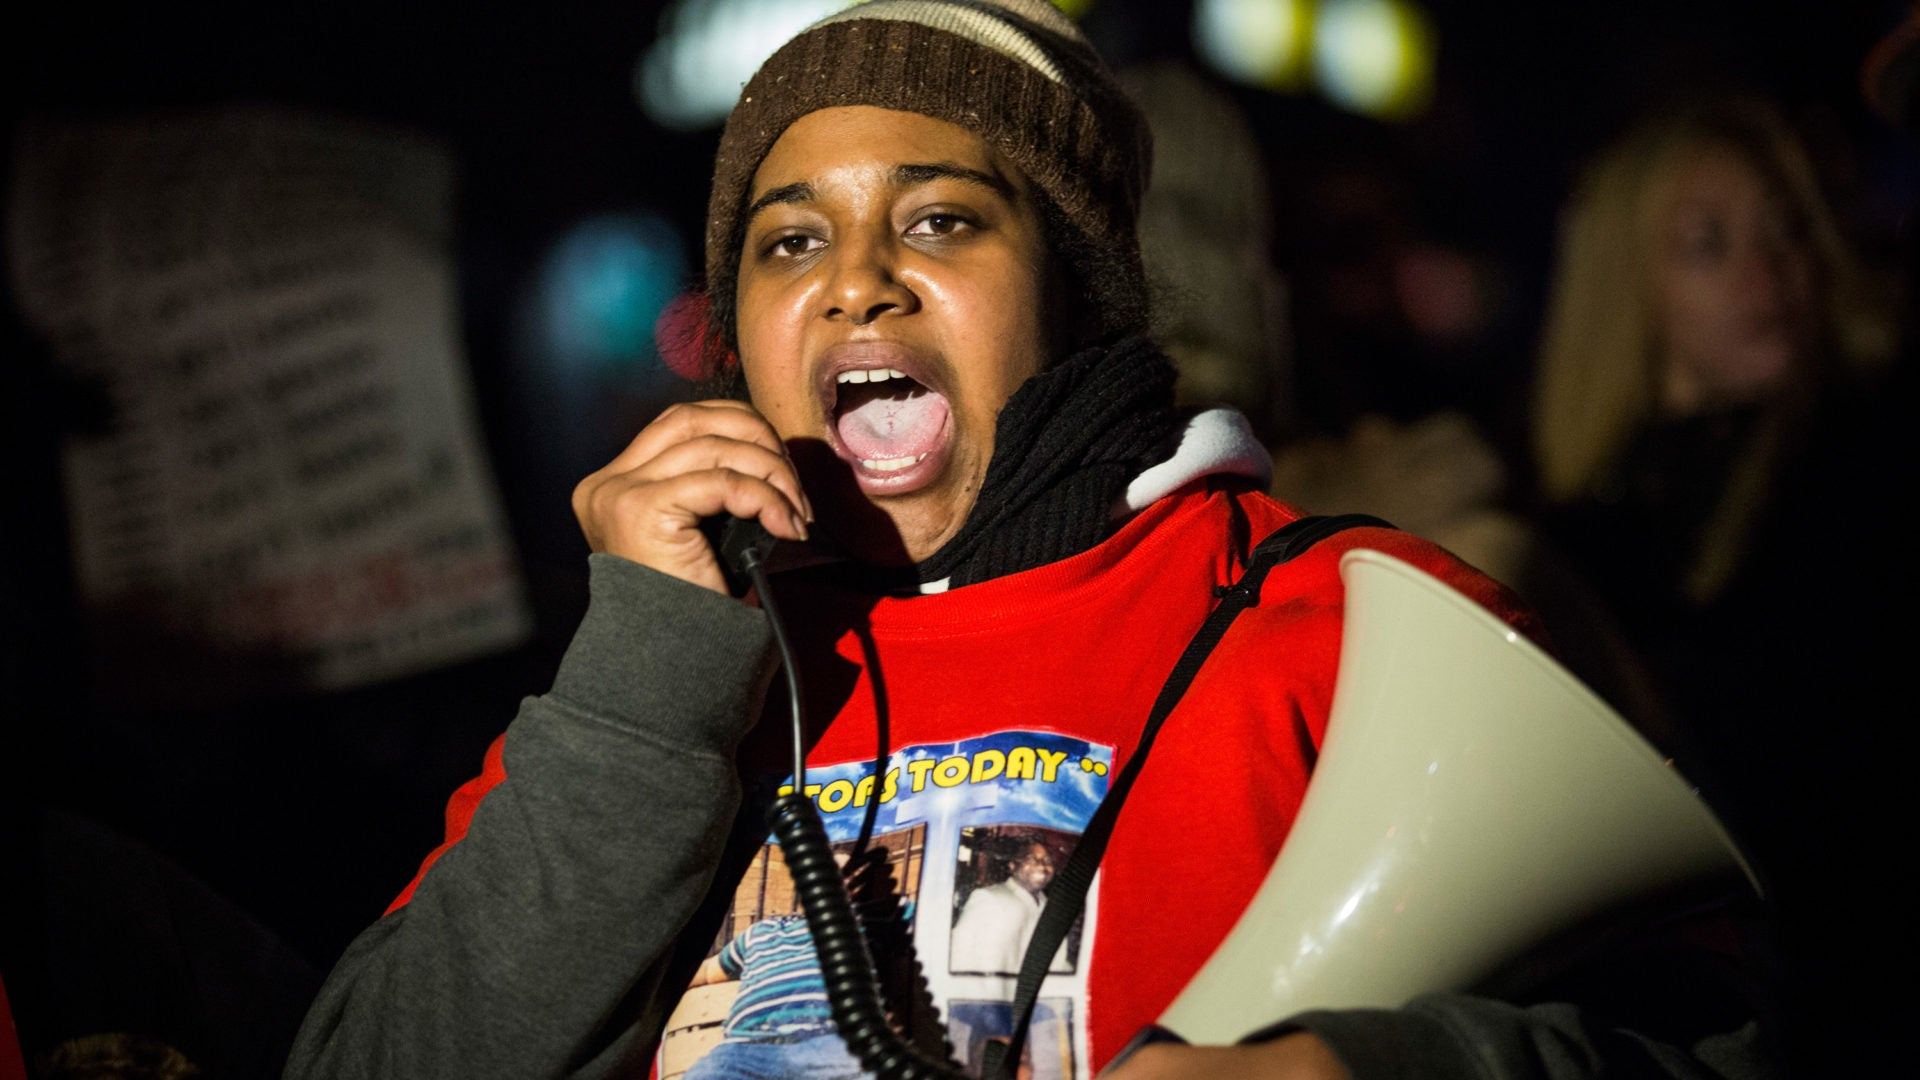 Erica Garner Honored With A Posthumous Shorty Award For Her Activism In The Fight Against Police Brutality